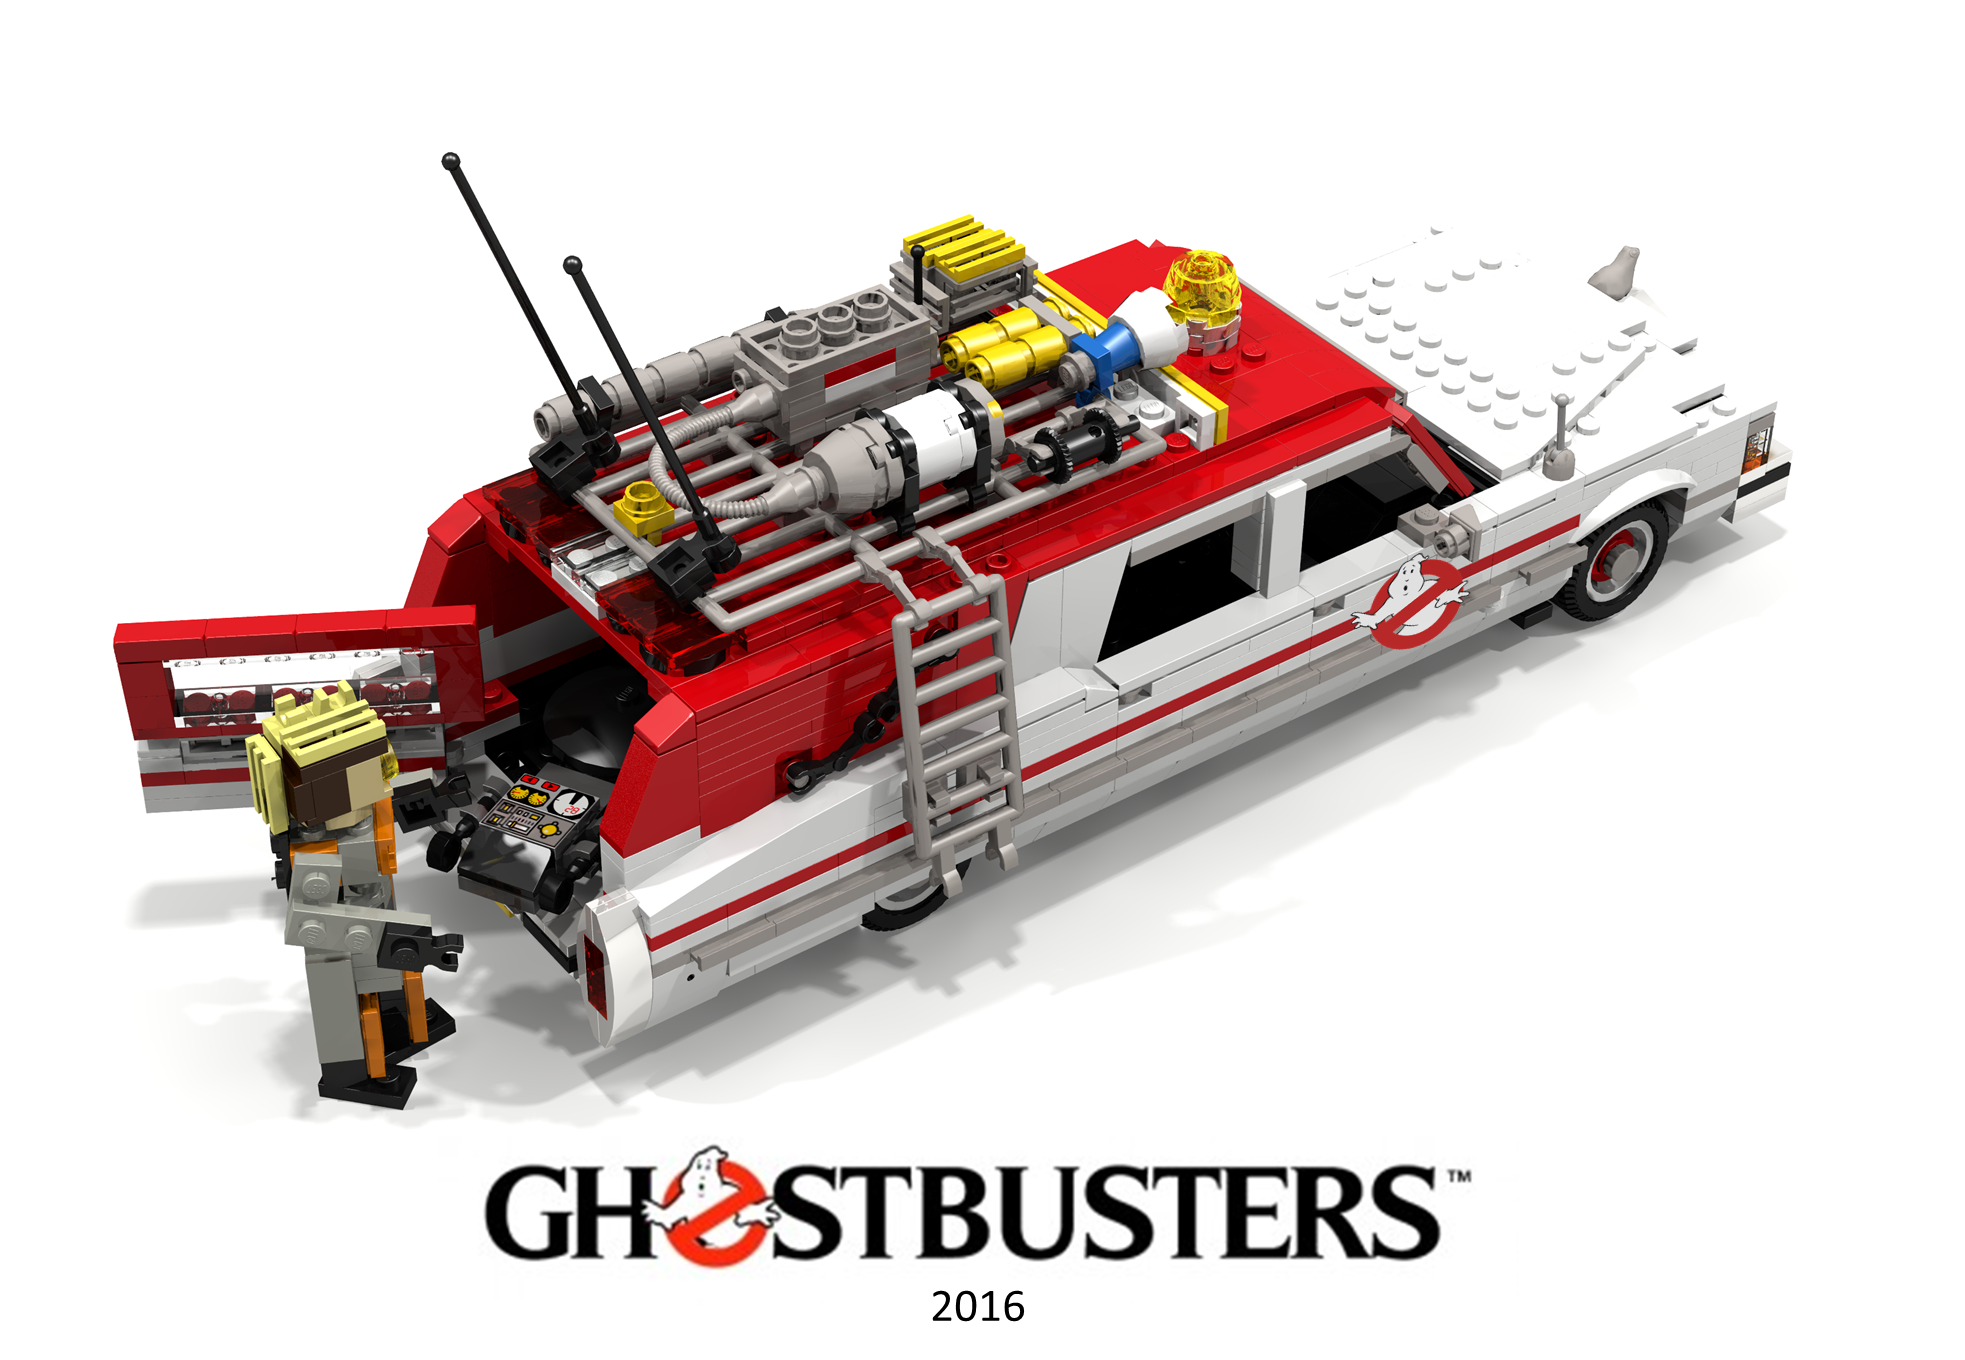 cadillac_1985_series_70_fleetwood_-_ghostbusters_ecto1_06.png